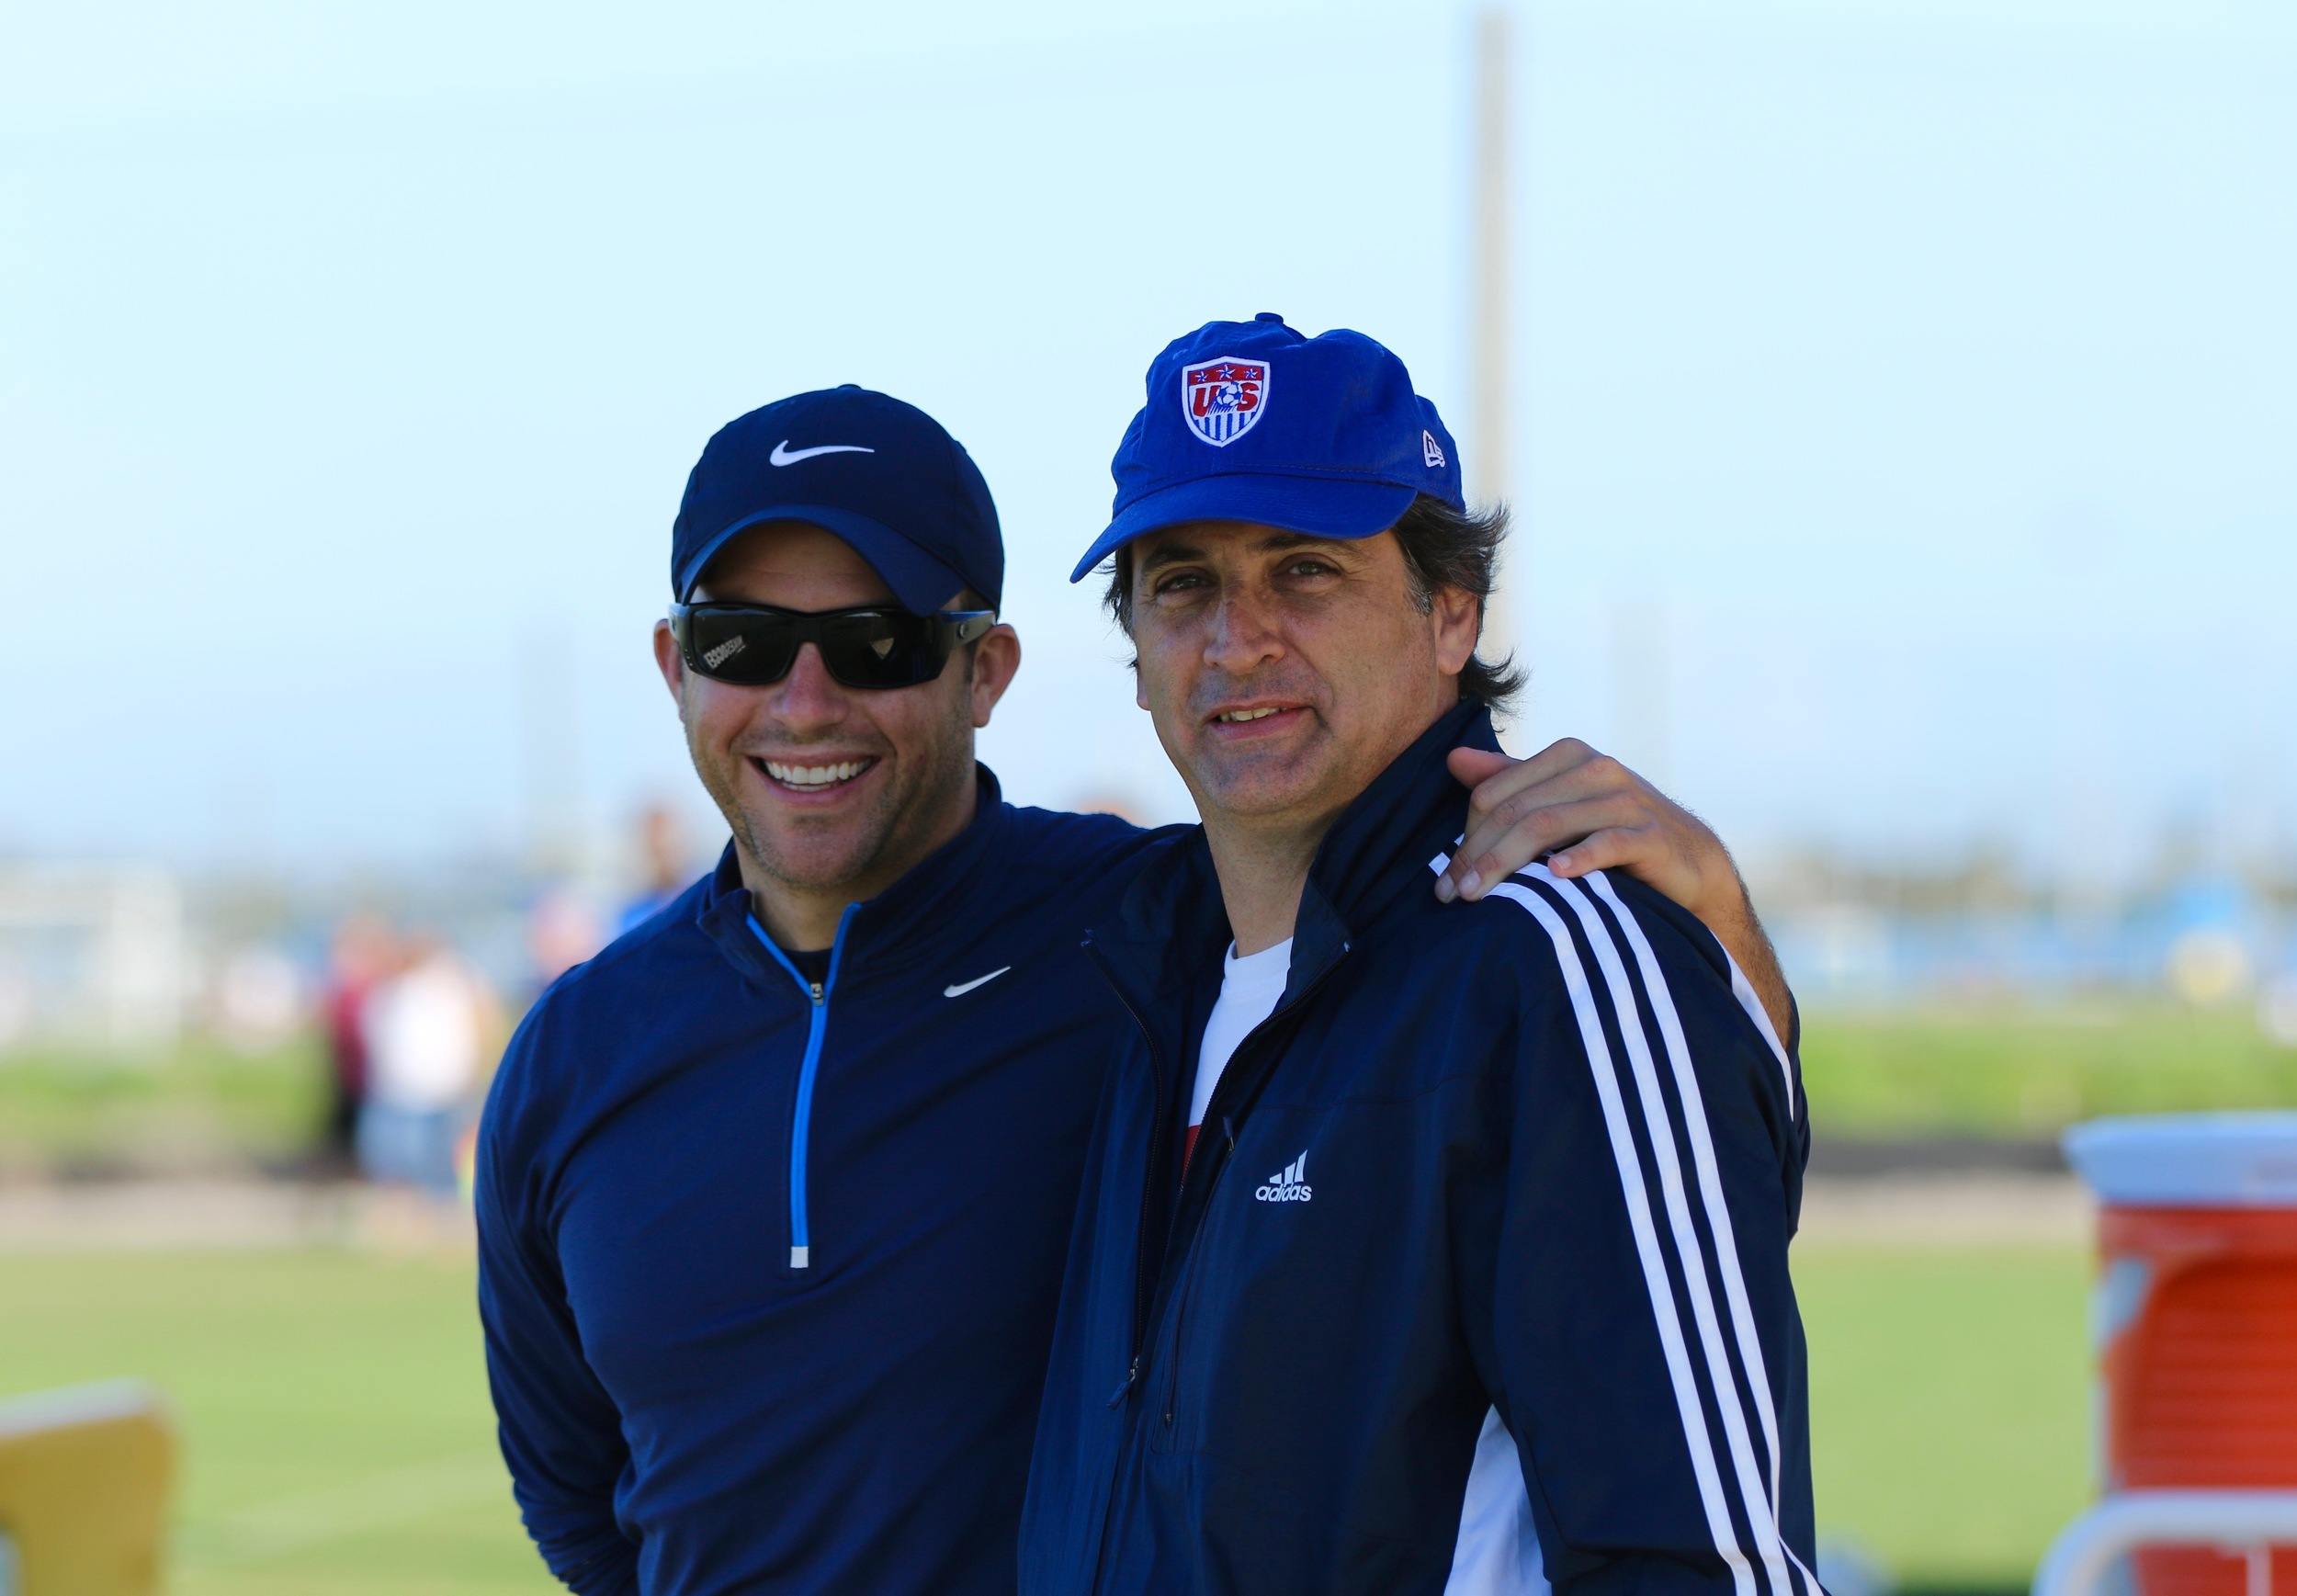 With friend Gordon Bengtson MLS | Assitant Director of Player Development | USA National Youth Team Scout